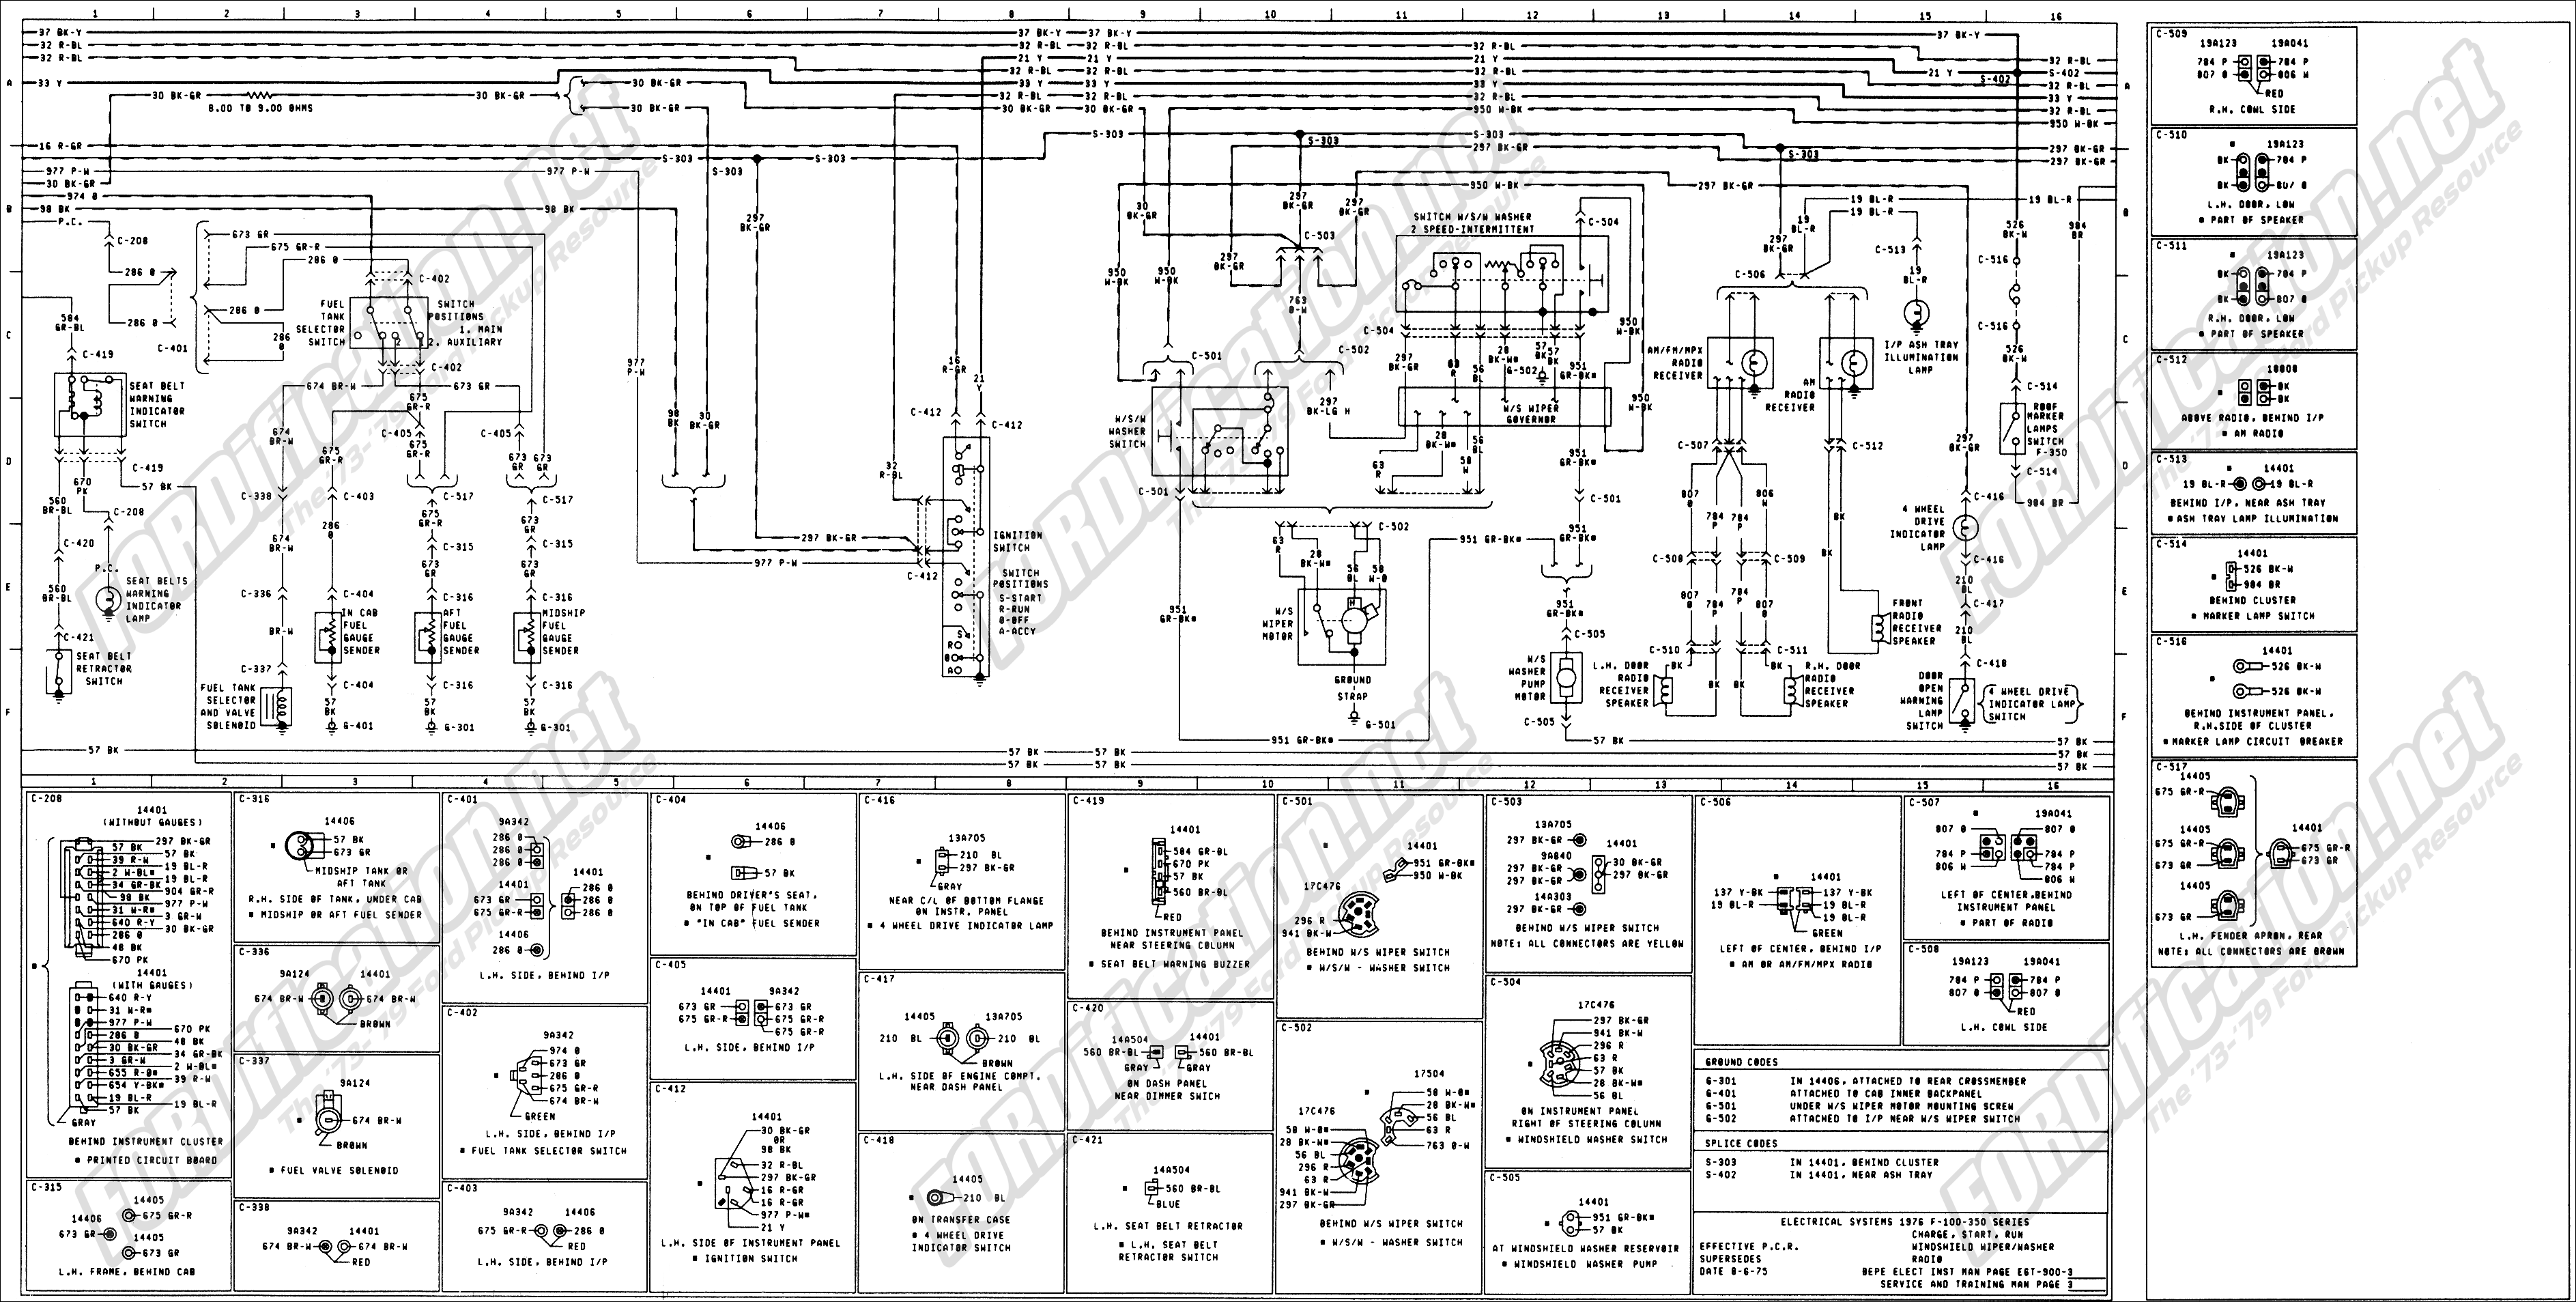 wiring_76master_3of9 1994 ford super duty wiring diagram wiring diagram simonand wiring diagrams for 2017 ford trucks at webbmarketing.co